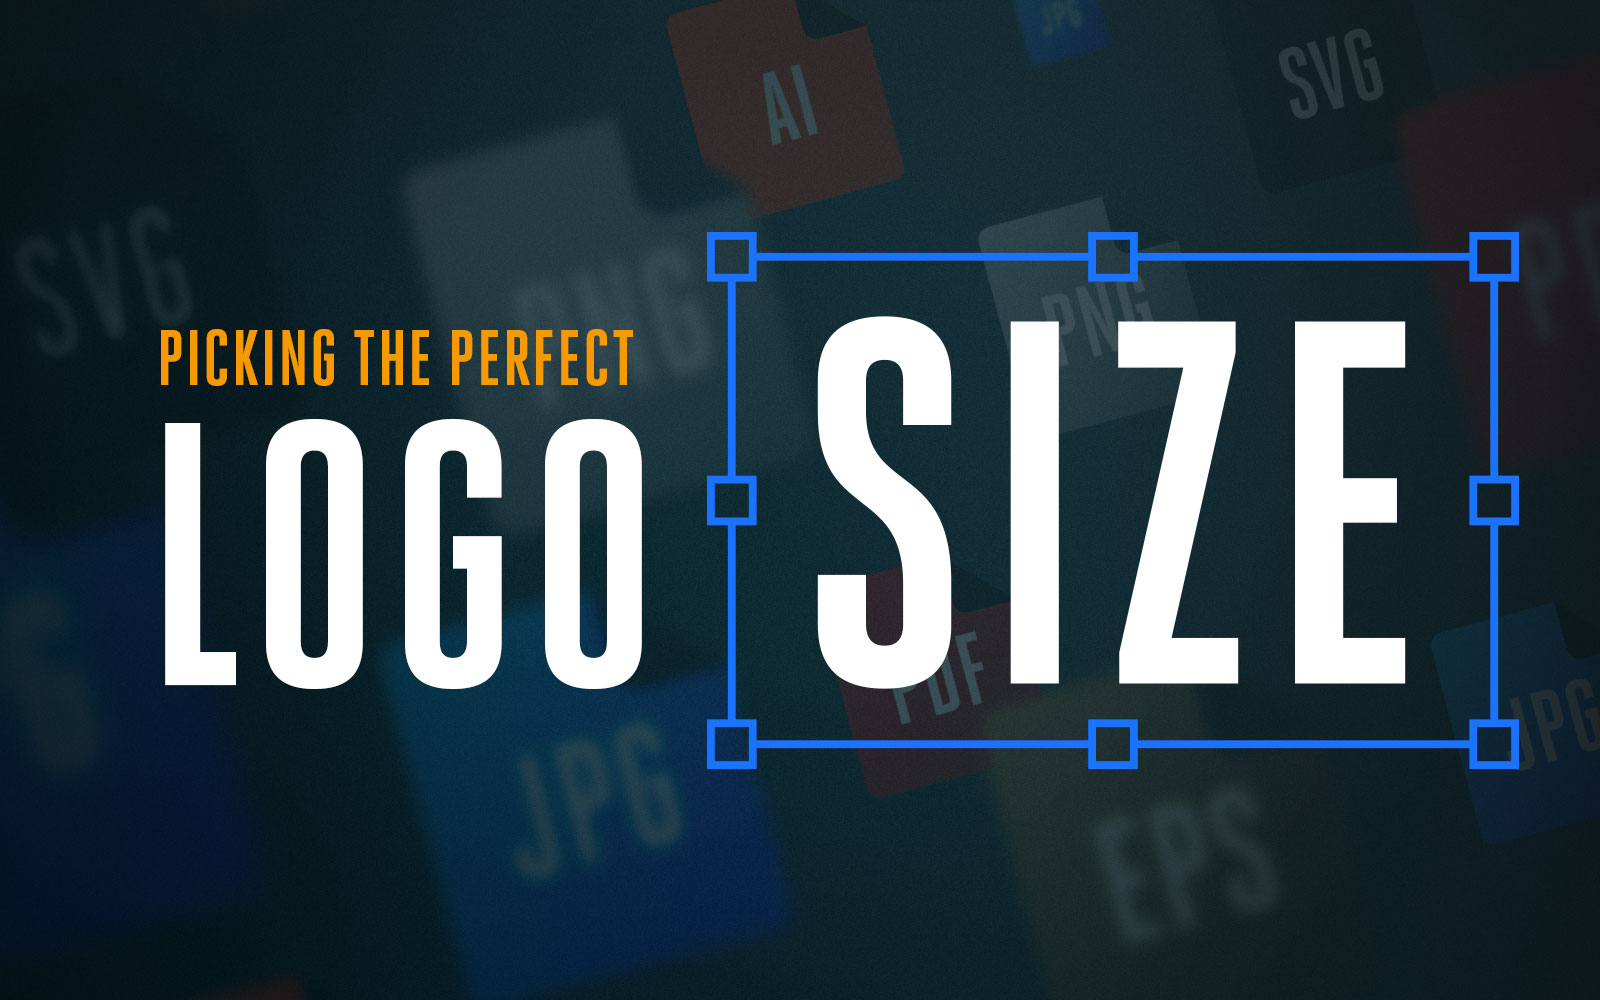 Preview for logo size article